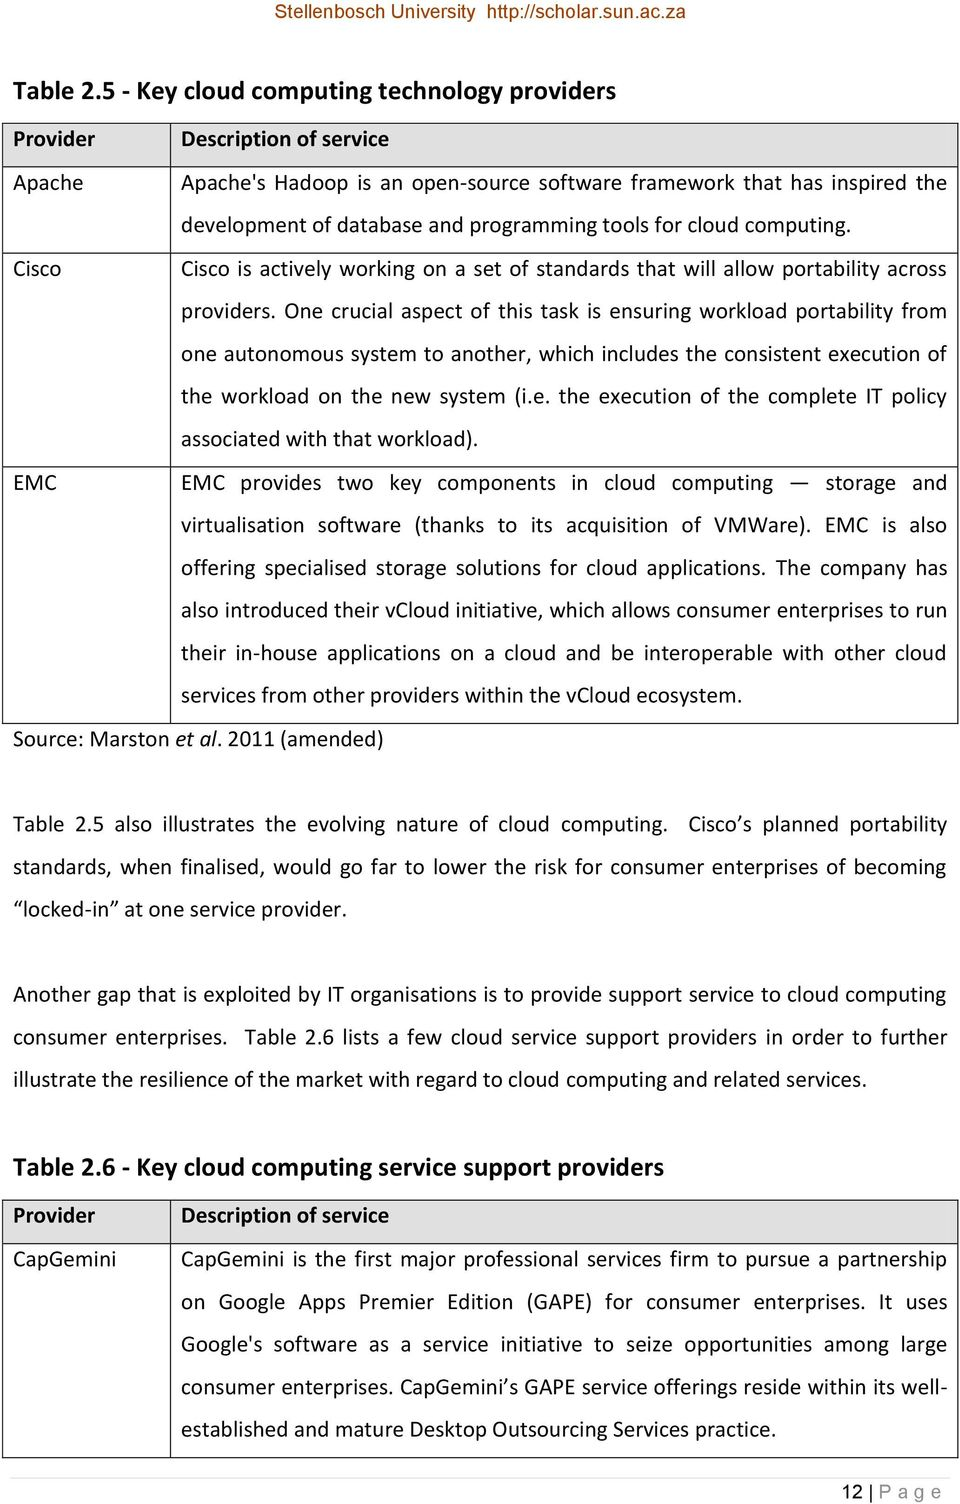 tools for cloud computing. Cisco Cisco is actively working on a set of standards that will allow portability across providers.